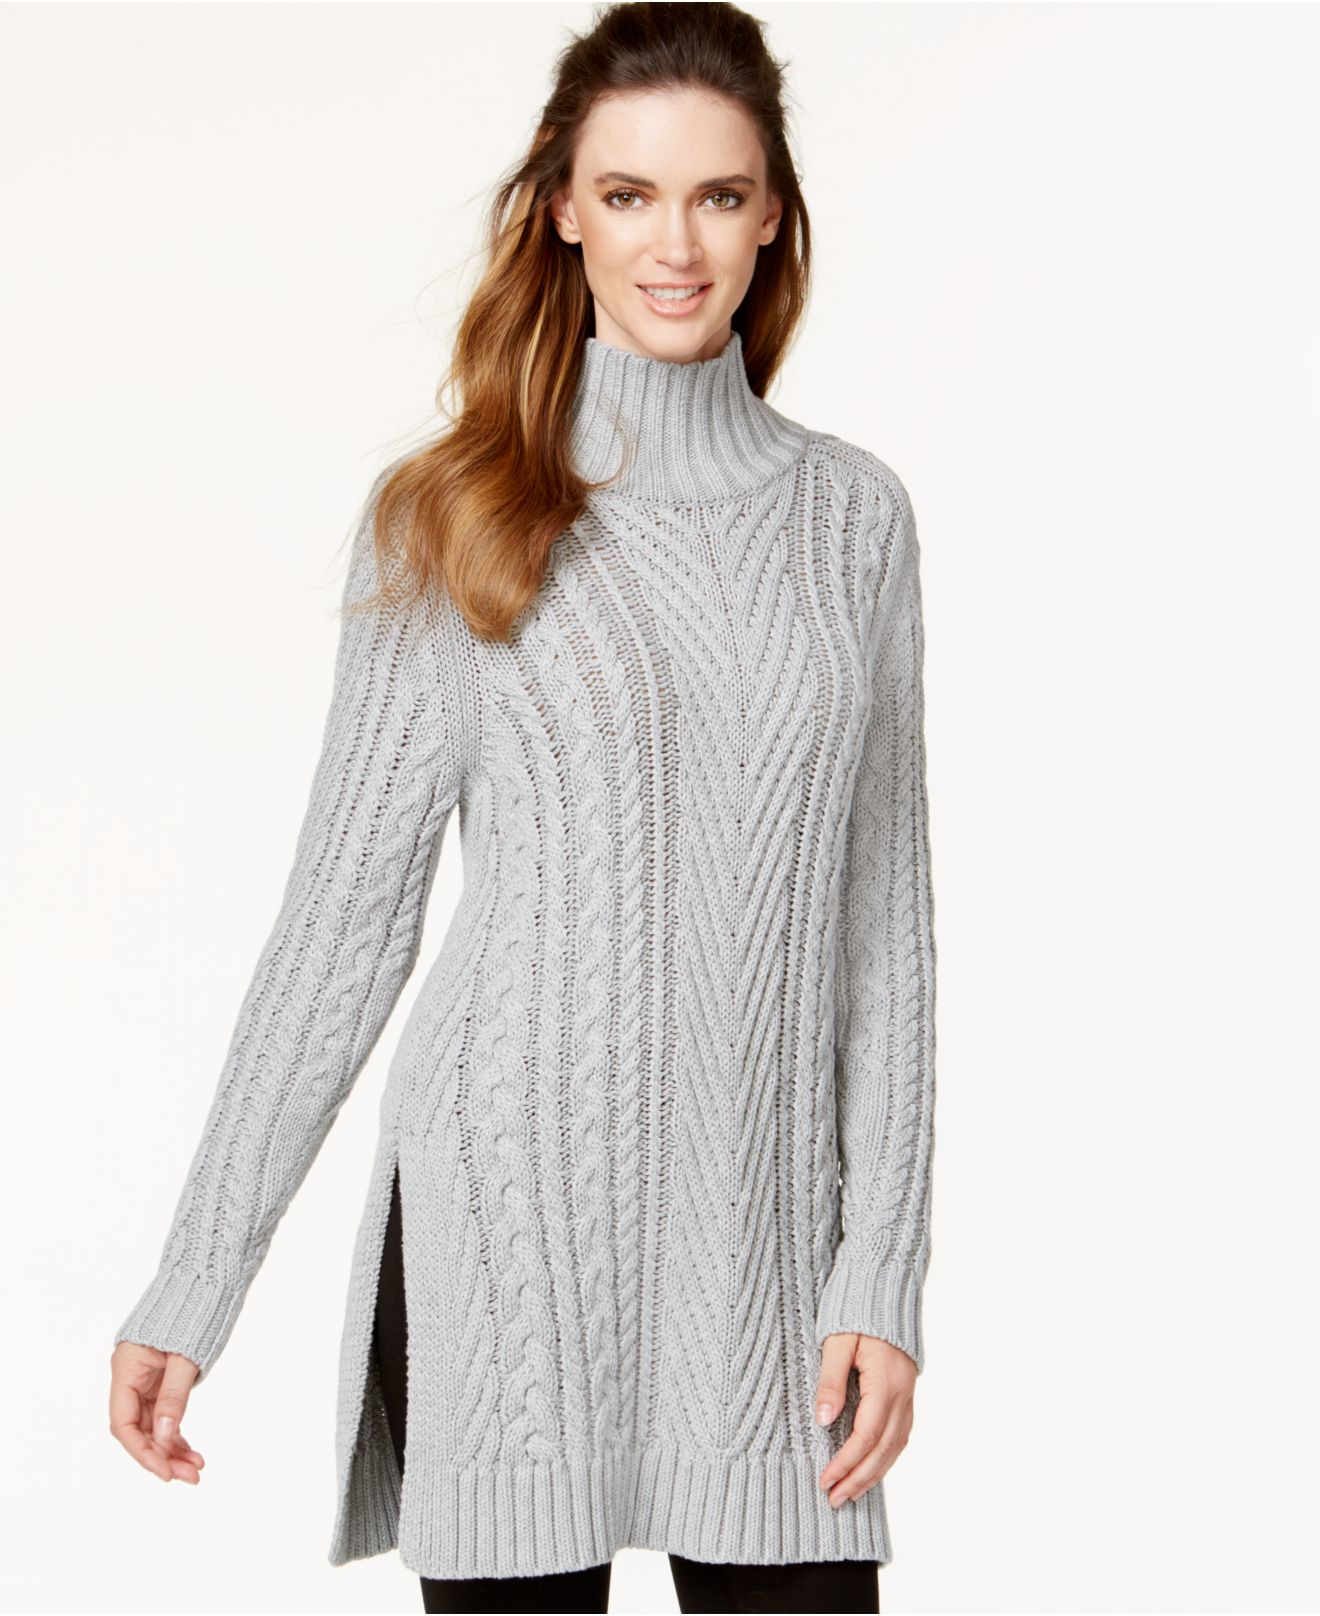 Vince camuto Mixed Cable-knit Tunic Sweater in Gray | Lyst